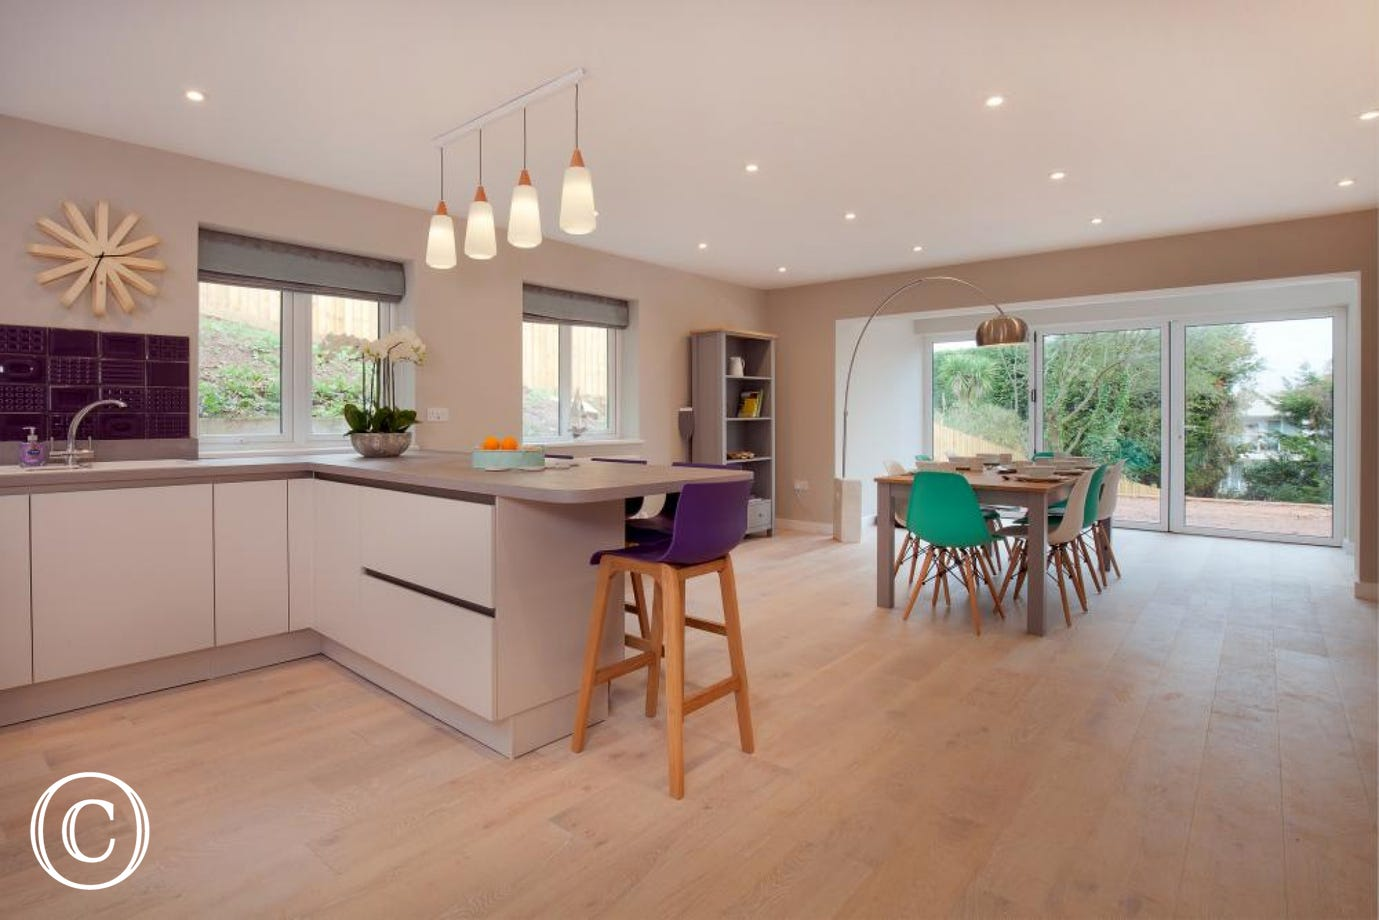 Extremely spacious kitchen & dining room with views over the large sunny terrace & gardens below